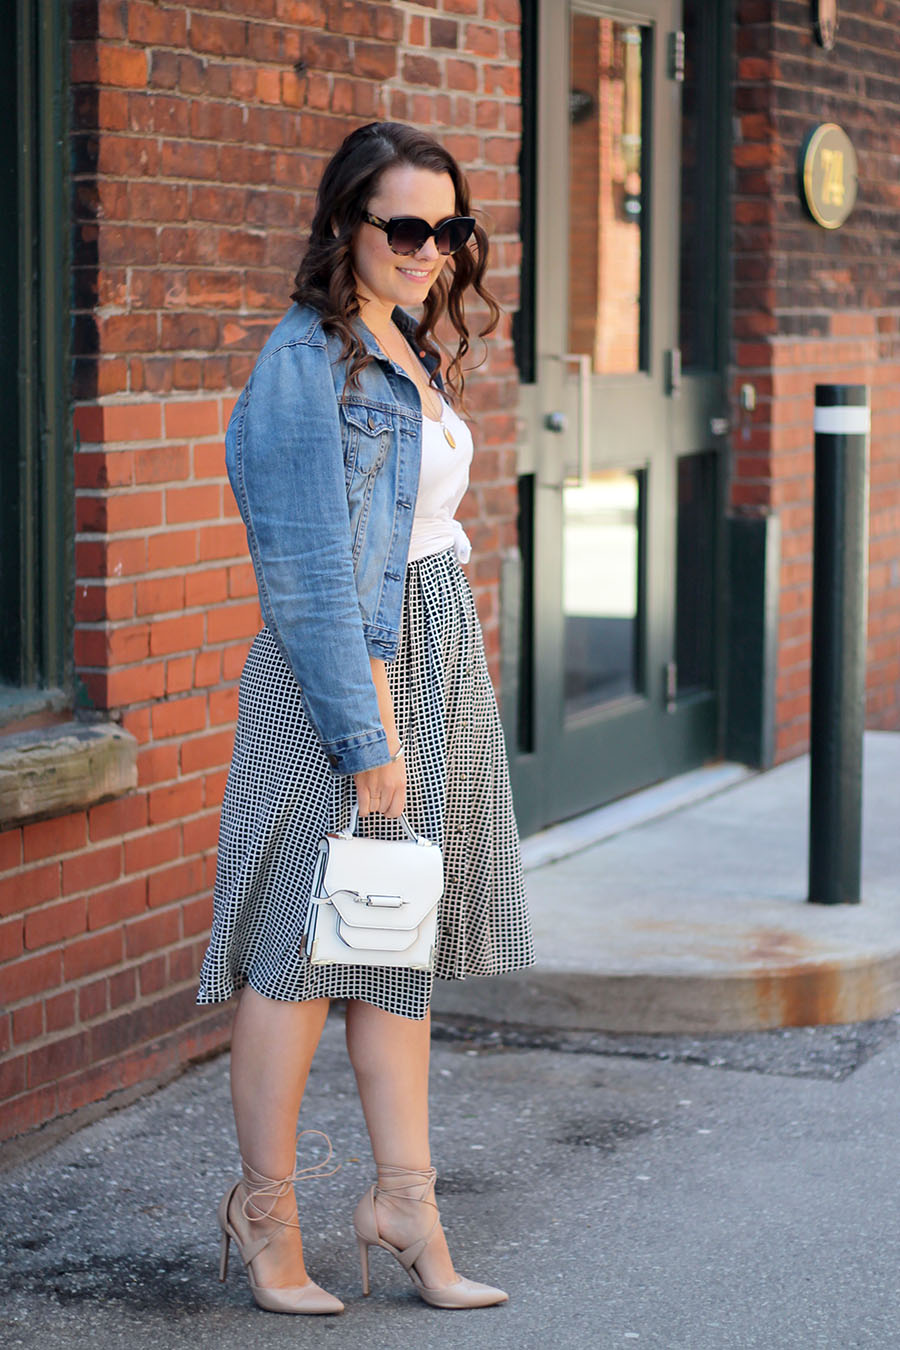 fashion-style-outfit-ideas-a-side-of-vogue-blog